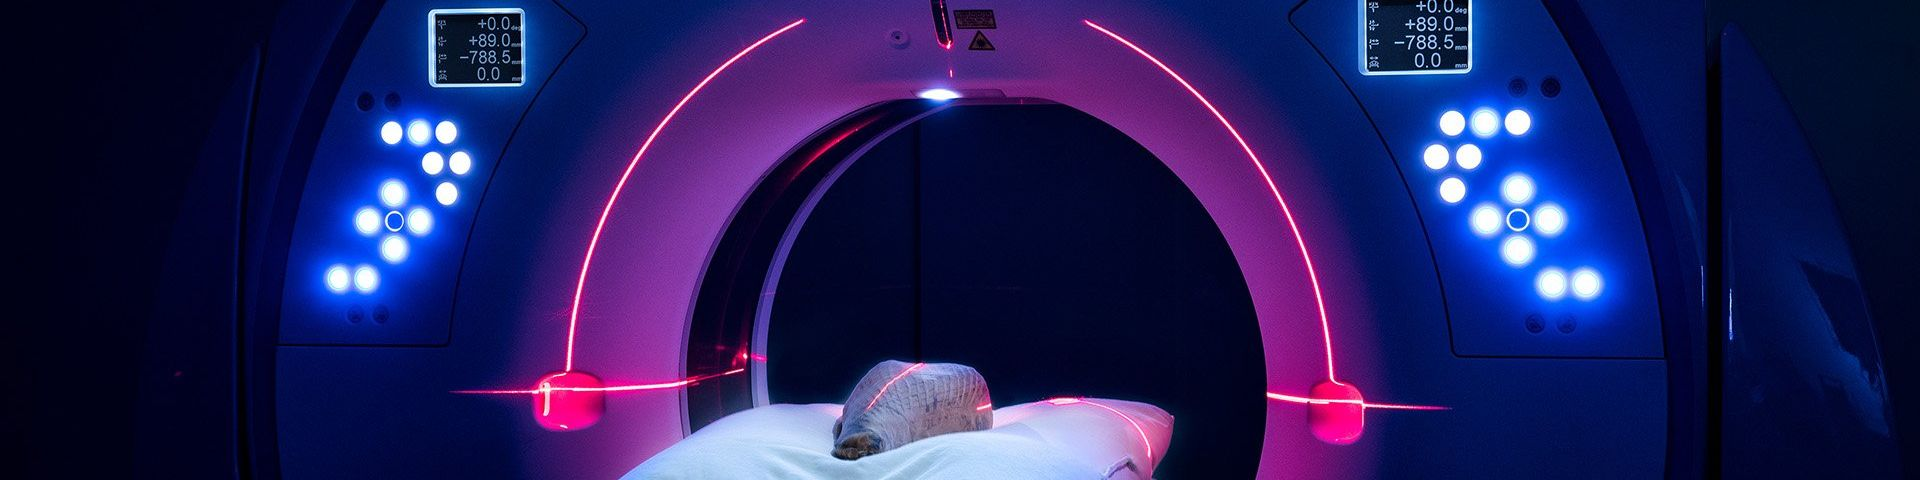 An object lies on a bed, inside a round CT scanner. It is illuminated with blue and purple lights.